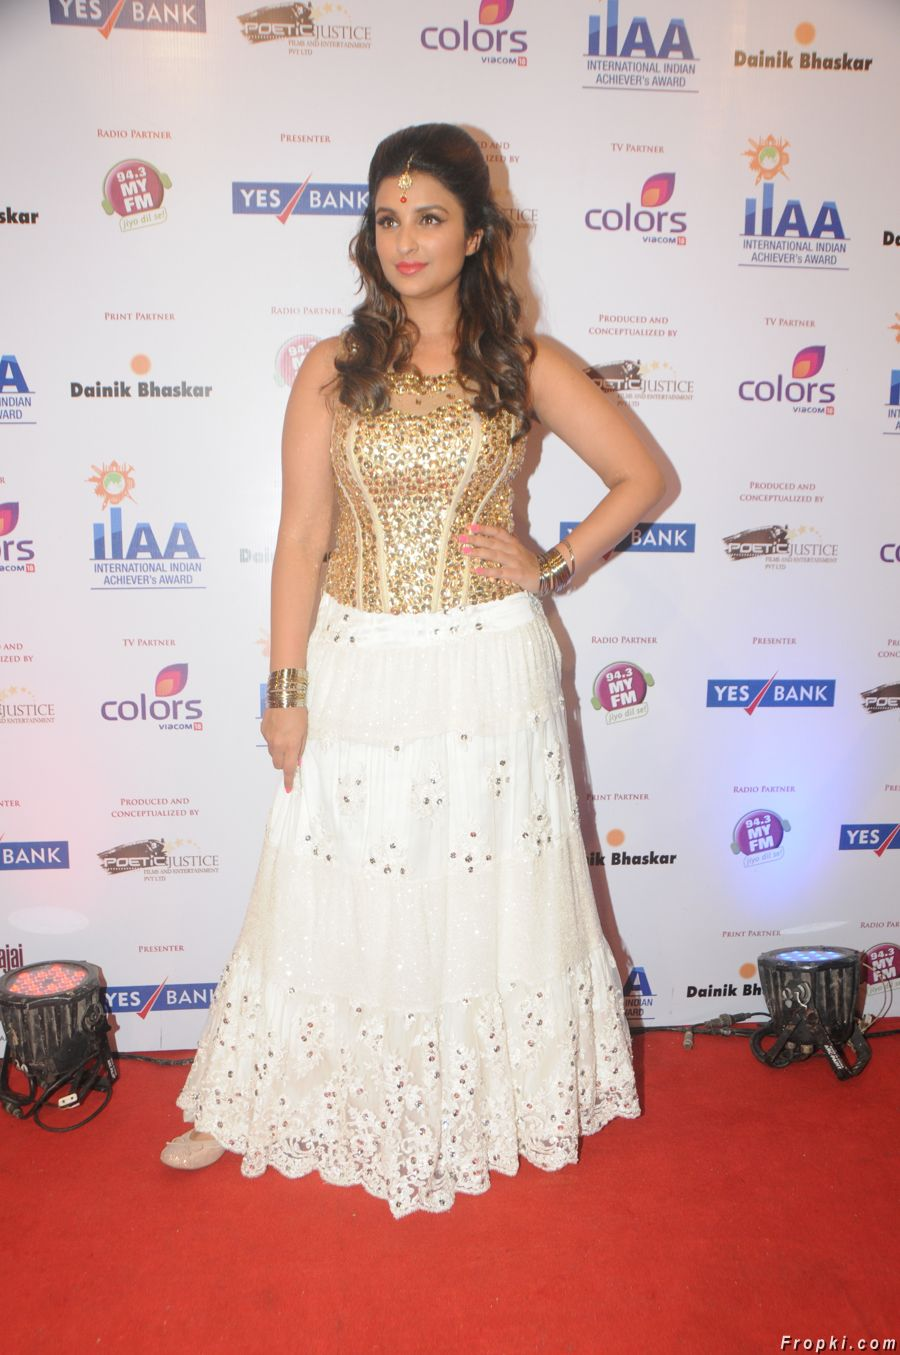 Parineeti at International Indian Achiever's Award